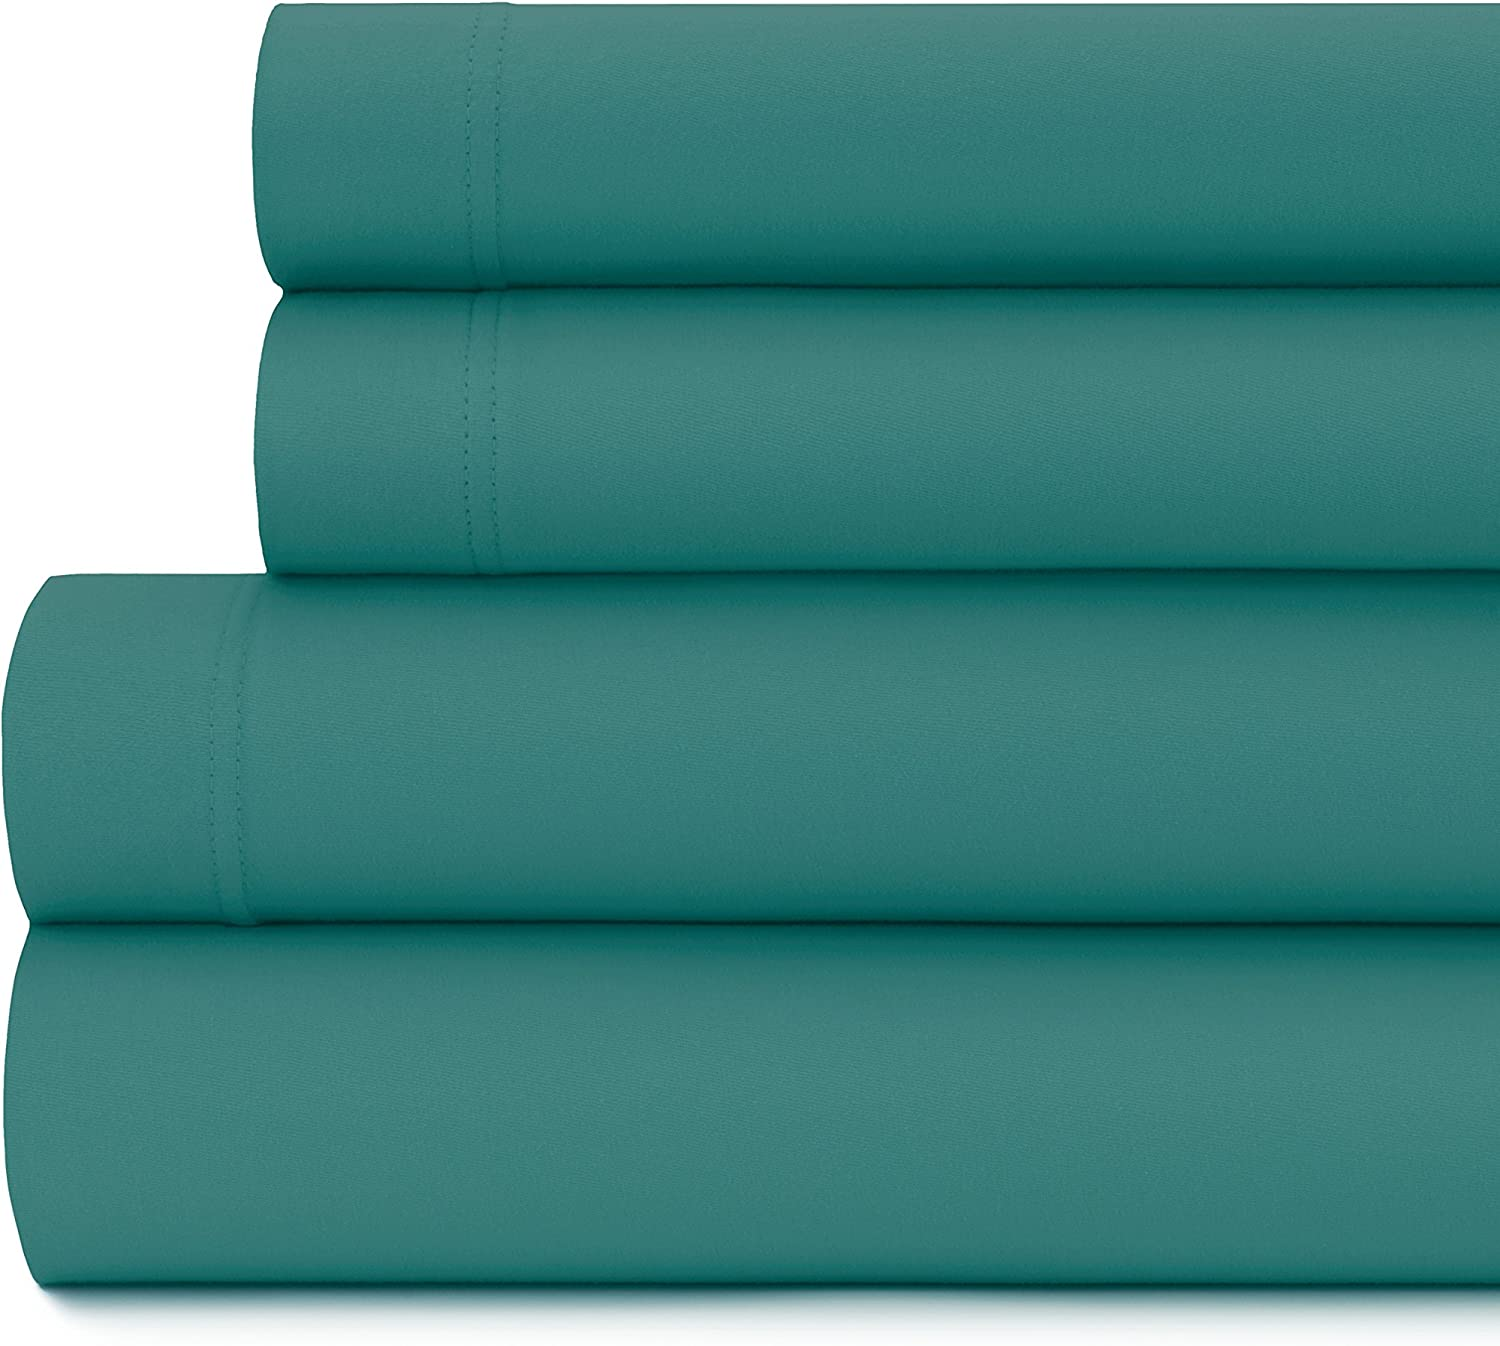 Briarwood Home Queen Size Jersey Knit Sheet Set - 4 Pc Super Soft 100% Cotton Breathable Bed Sheets – Easy Fit – Comfortable, Cozy T-Shirt Soft – All Season Luxury Bedding (Queen, Teal)